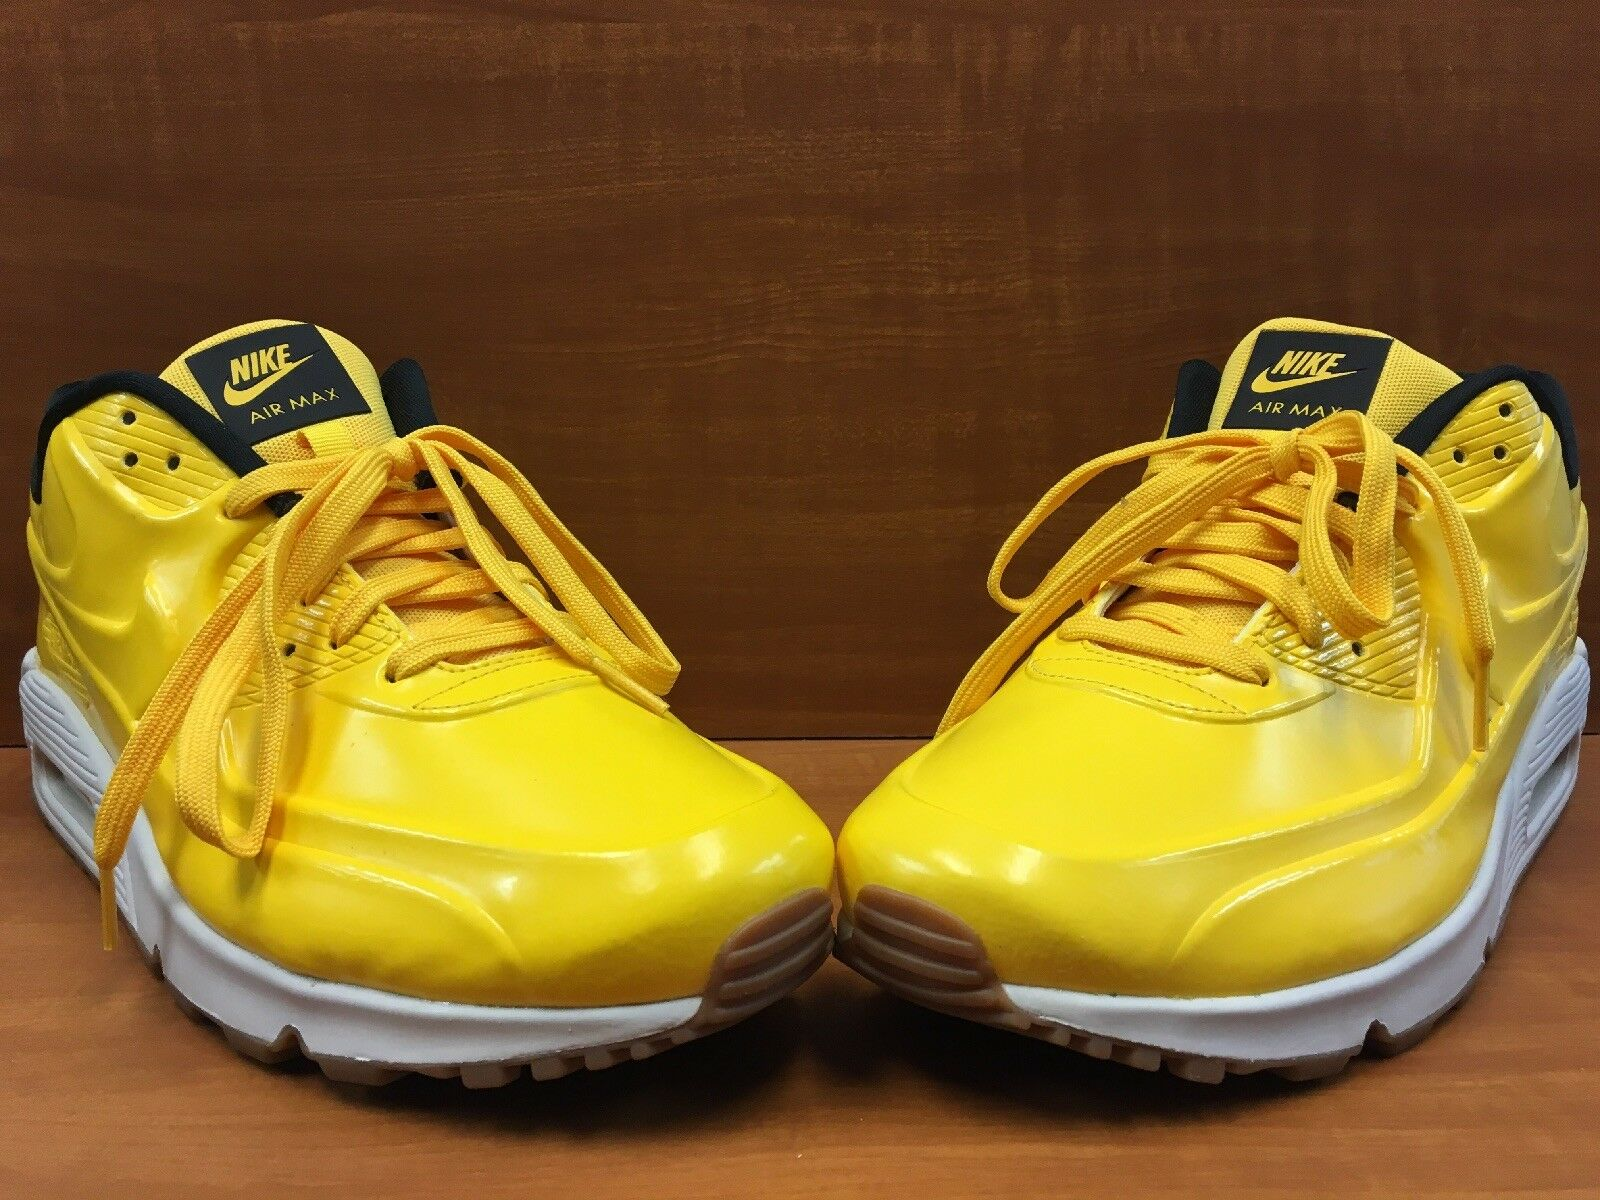 "NIKE AIR MAX 90 VT QS ""Bumblebee"" Varsity Maize Black 831114-700 Men's Size 12"